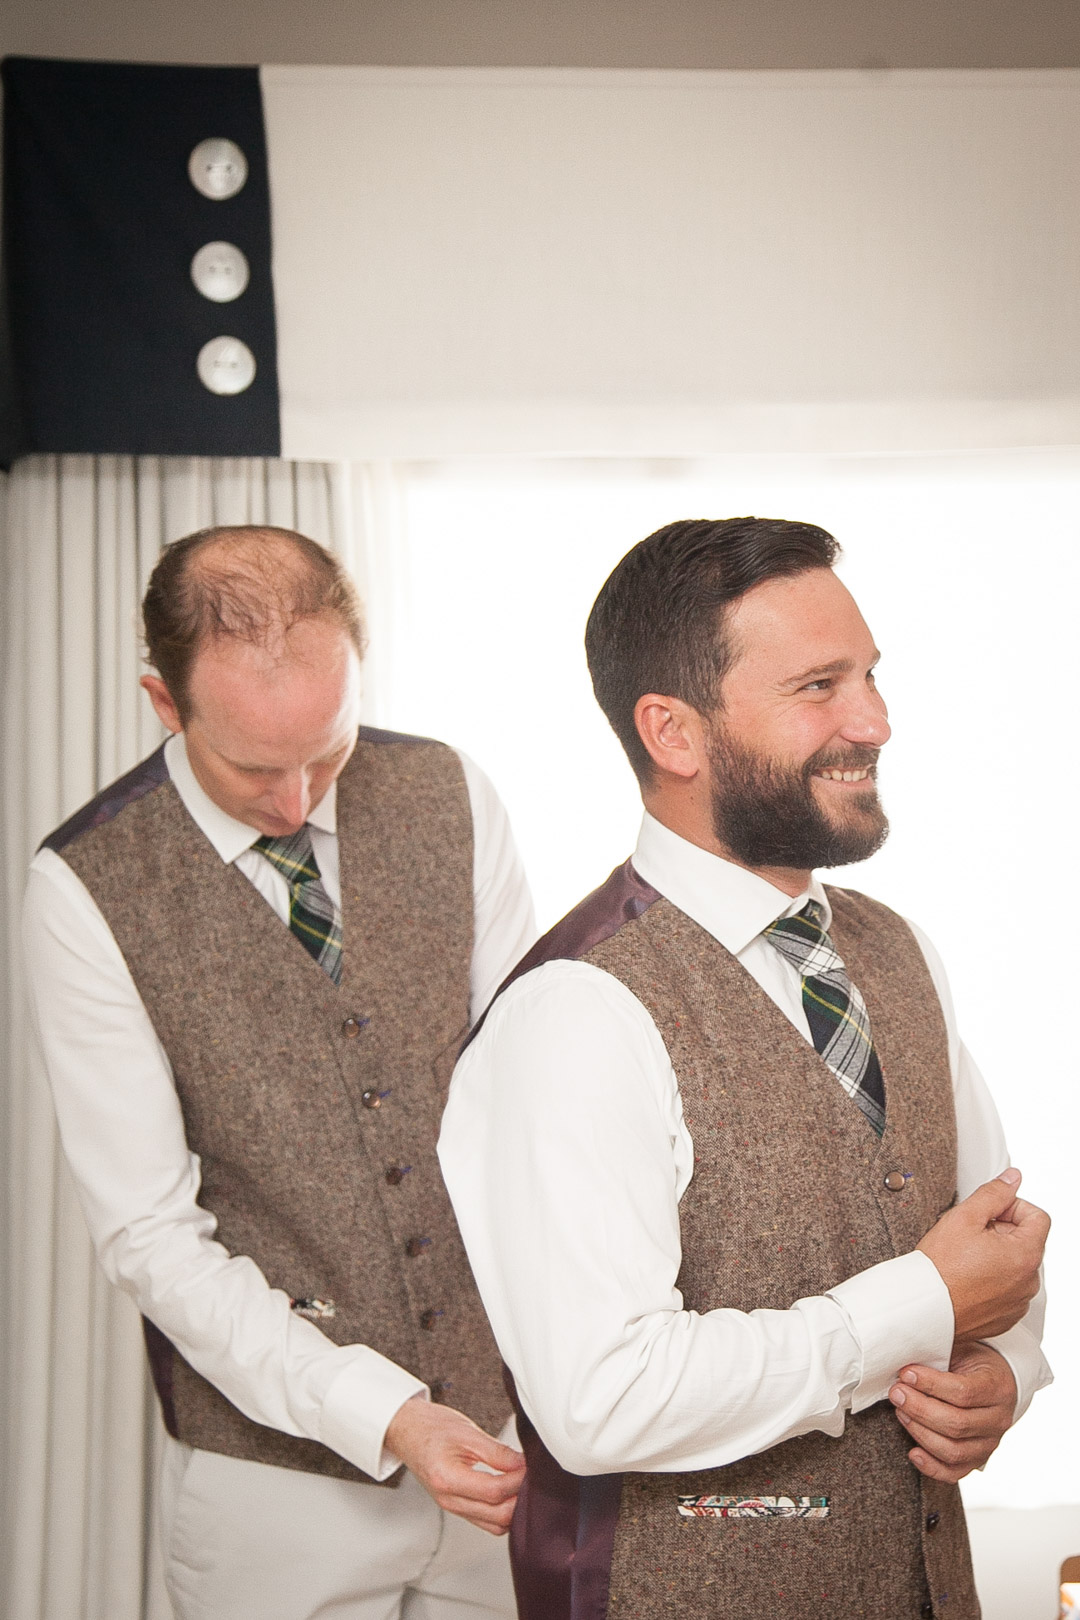 tweed-waistcoat-and-tartan-tie-sara-and-tims-festival-wedding-joe-buford-photography